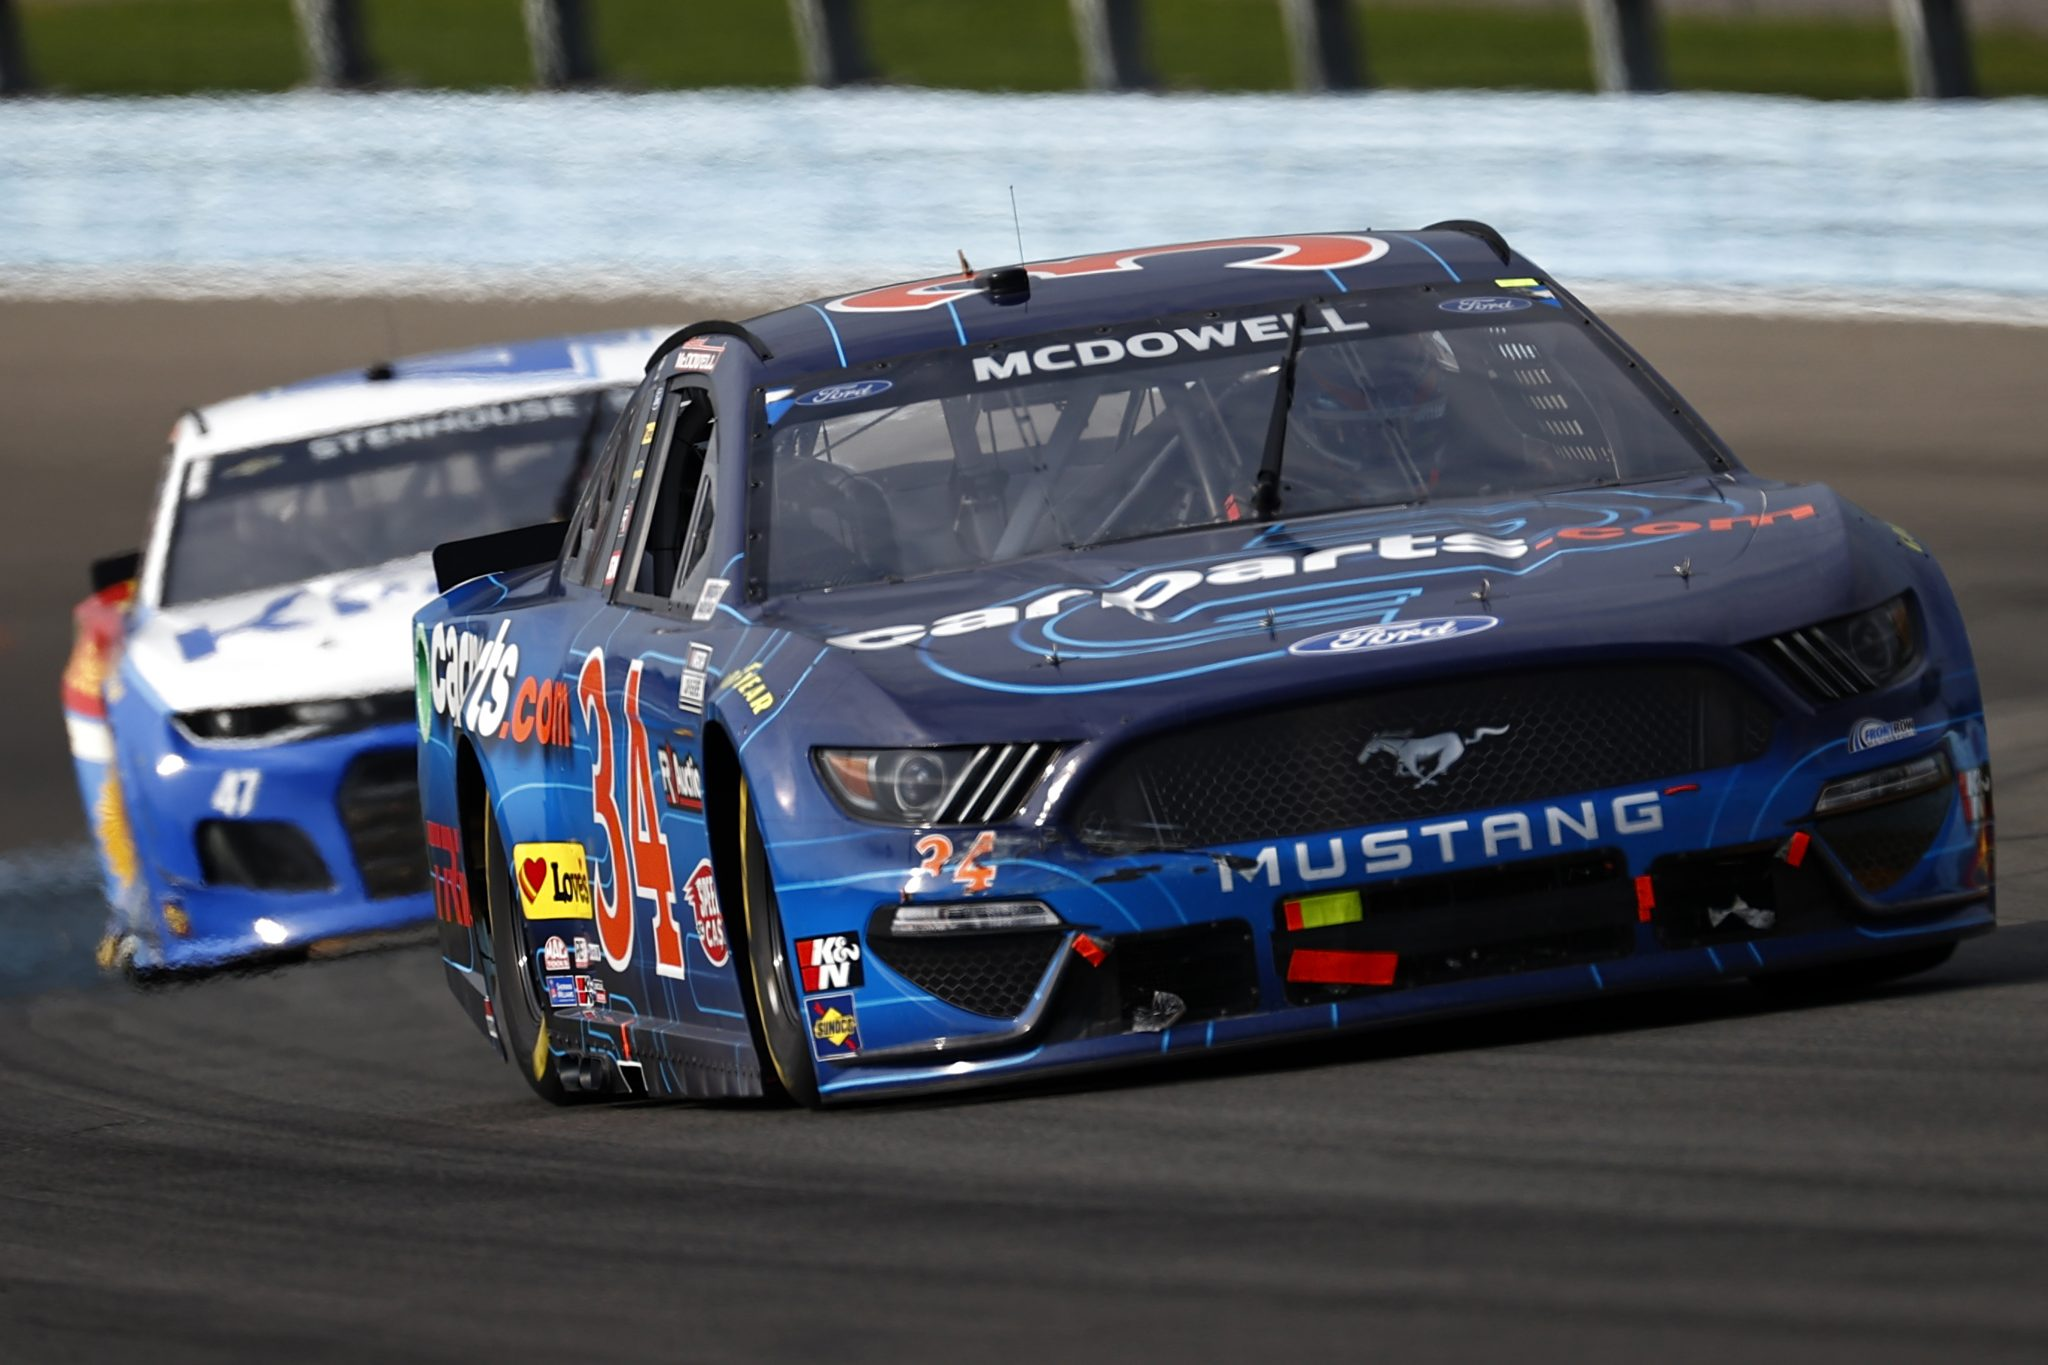 WATKINS GLEN, NEW YORK - AUGUST 08: Michael McDowell, driver of the #34 CarParts.com Ford, drives during the NASCAR Cup Series Go Bowling at The Glen at Watkins Glen International on August 08, 2021 in Watkins Glen, New York. (Photo by Jared C. Tilton/Getty Images) | Getty Images